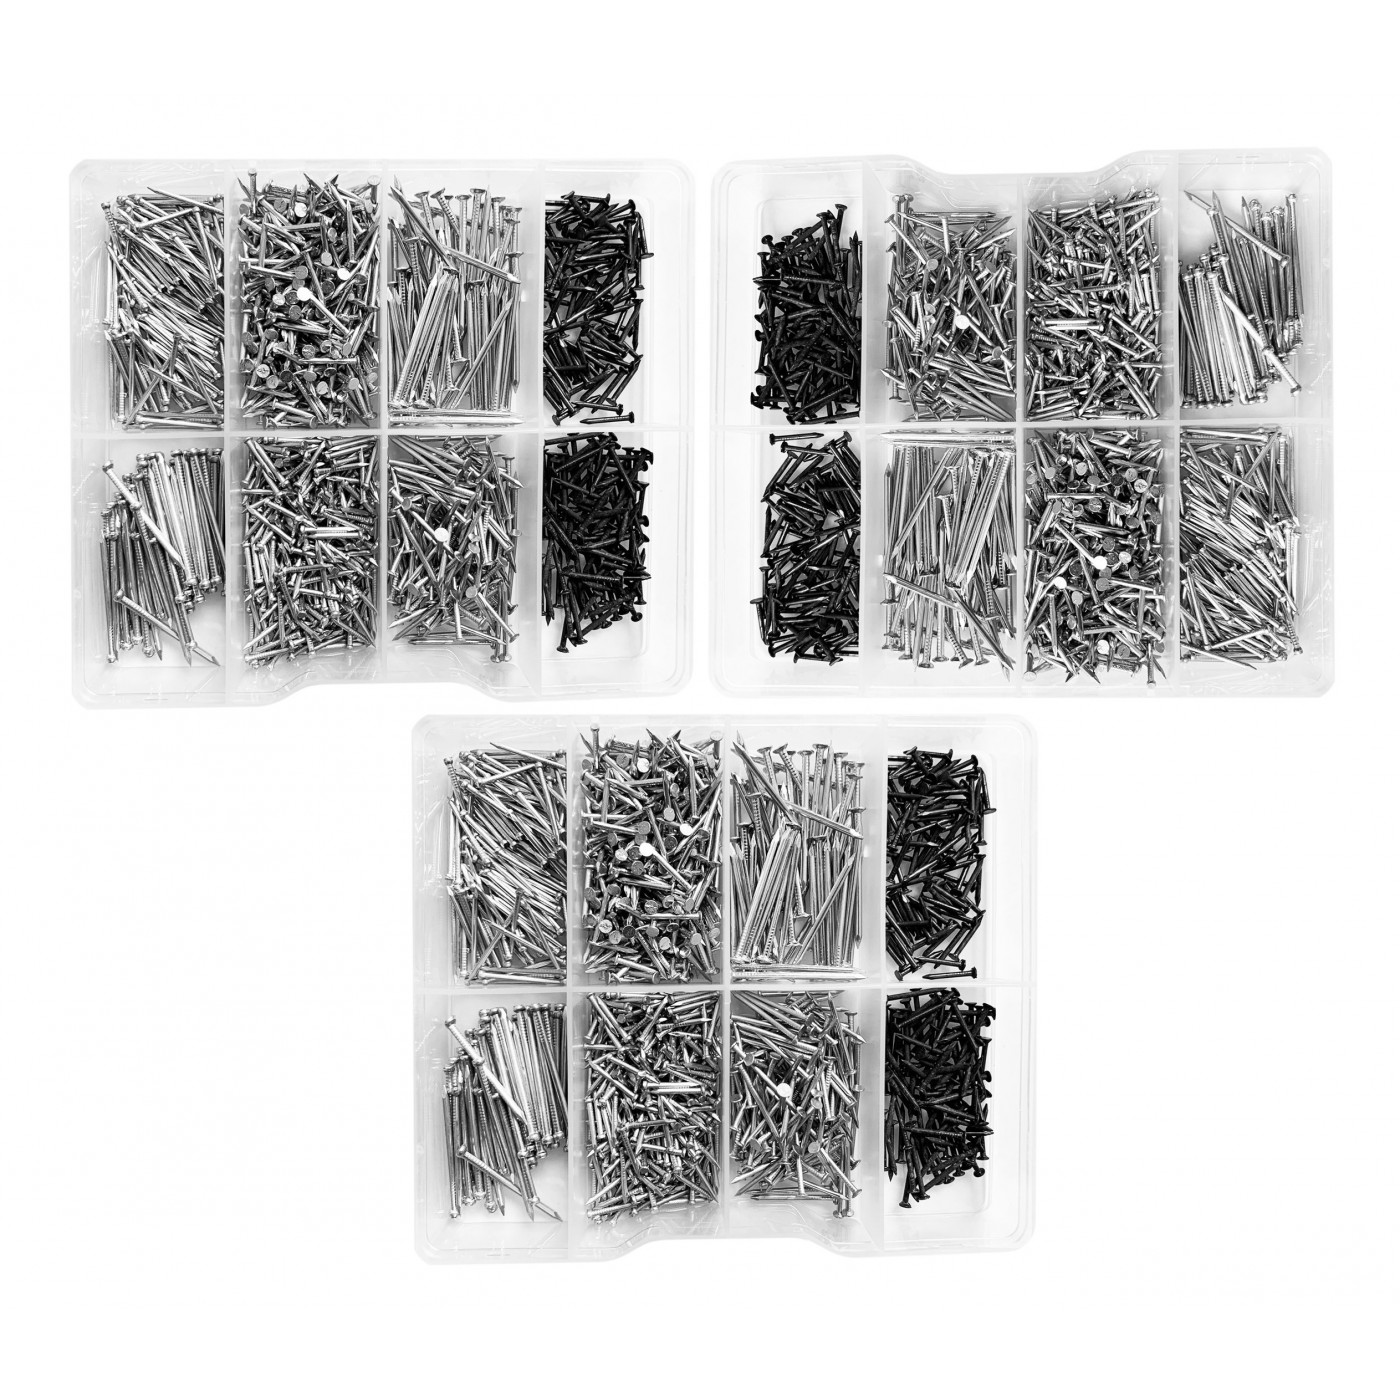 Set of 3375 small nails in plastic assortment boxes (11-30 mm)